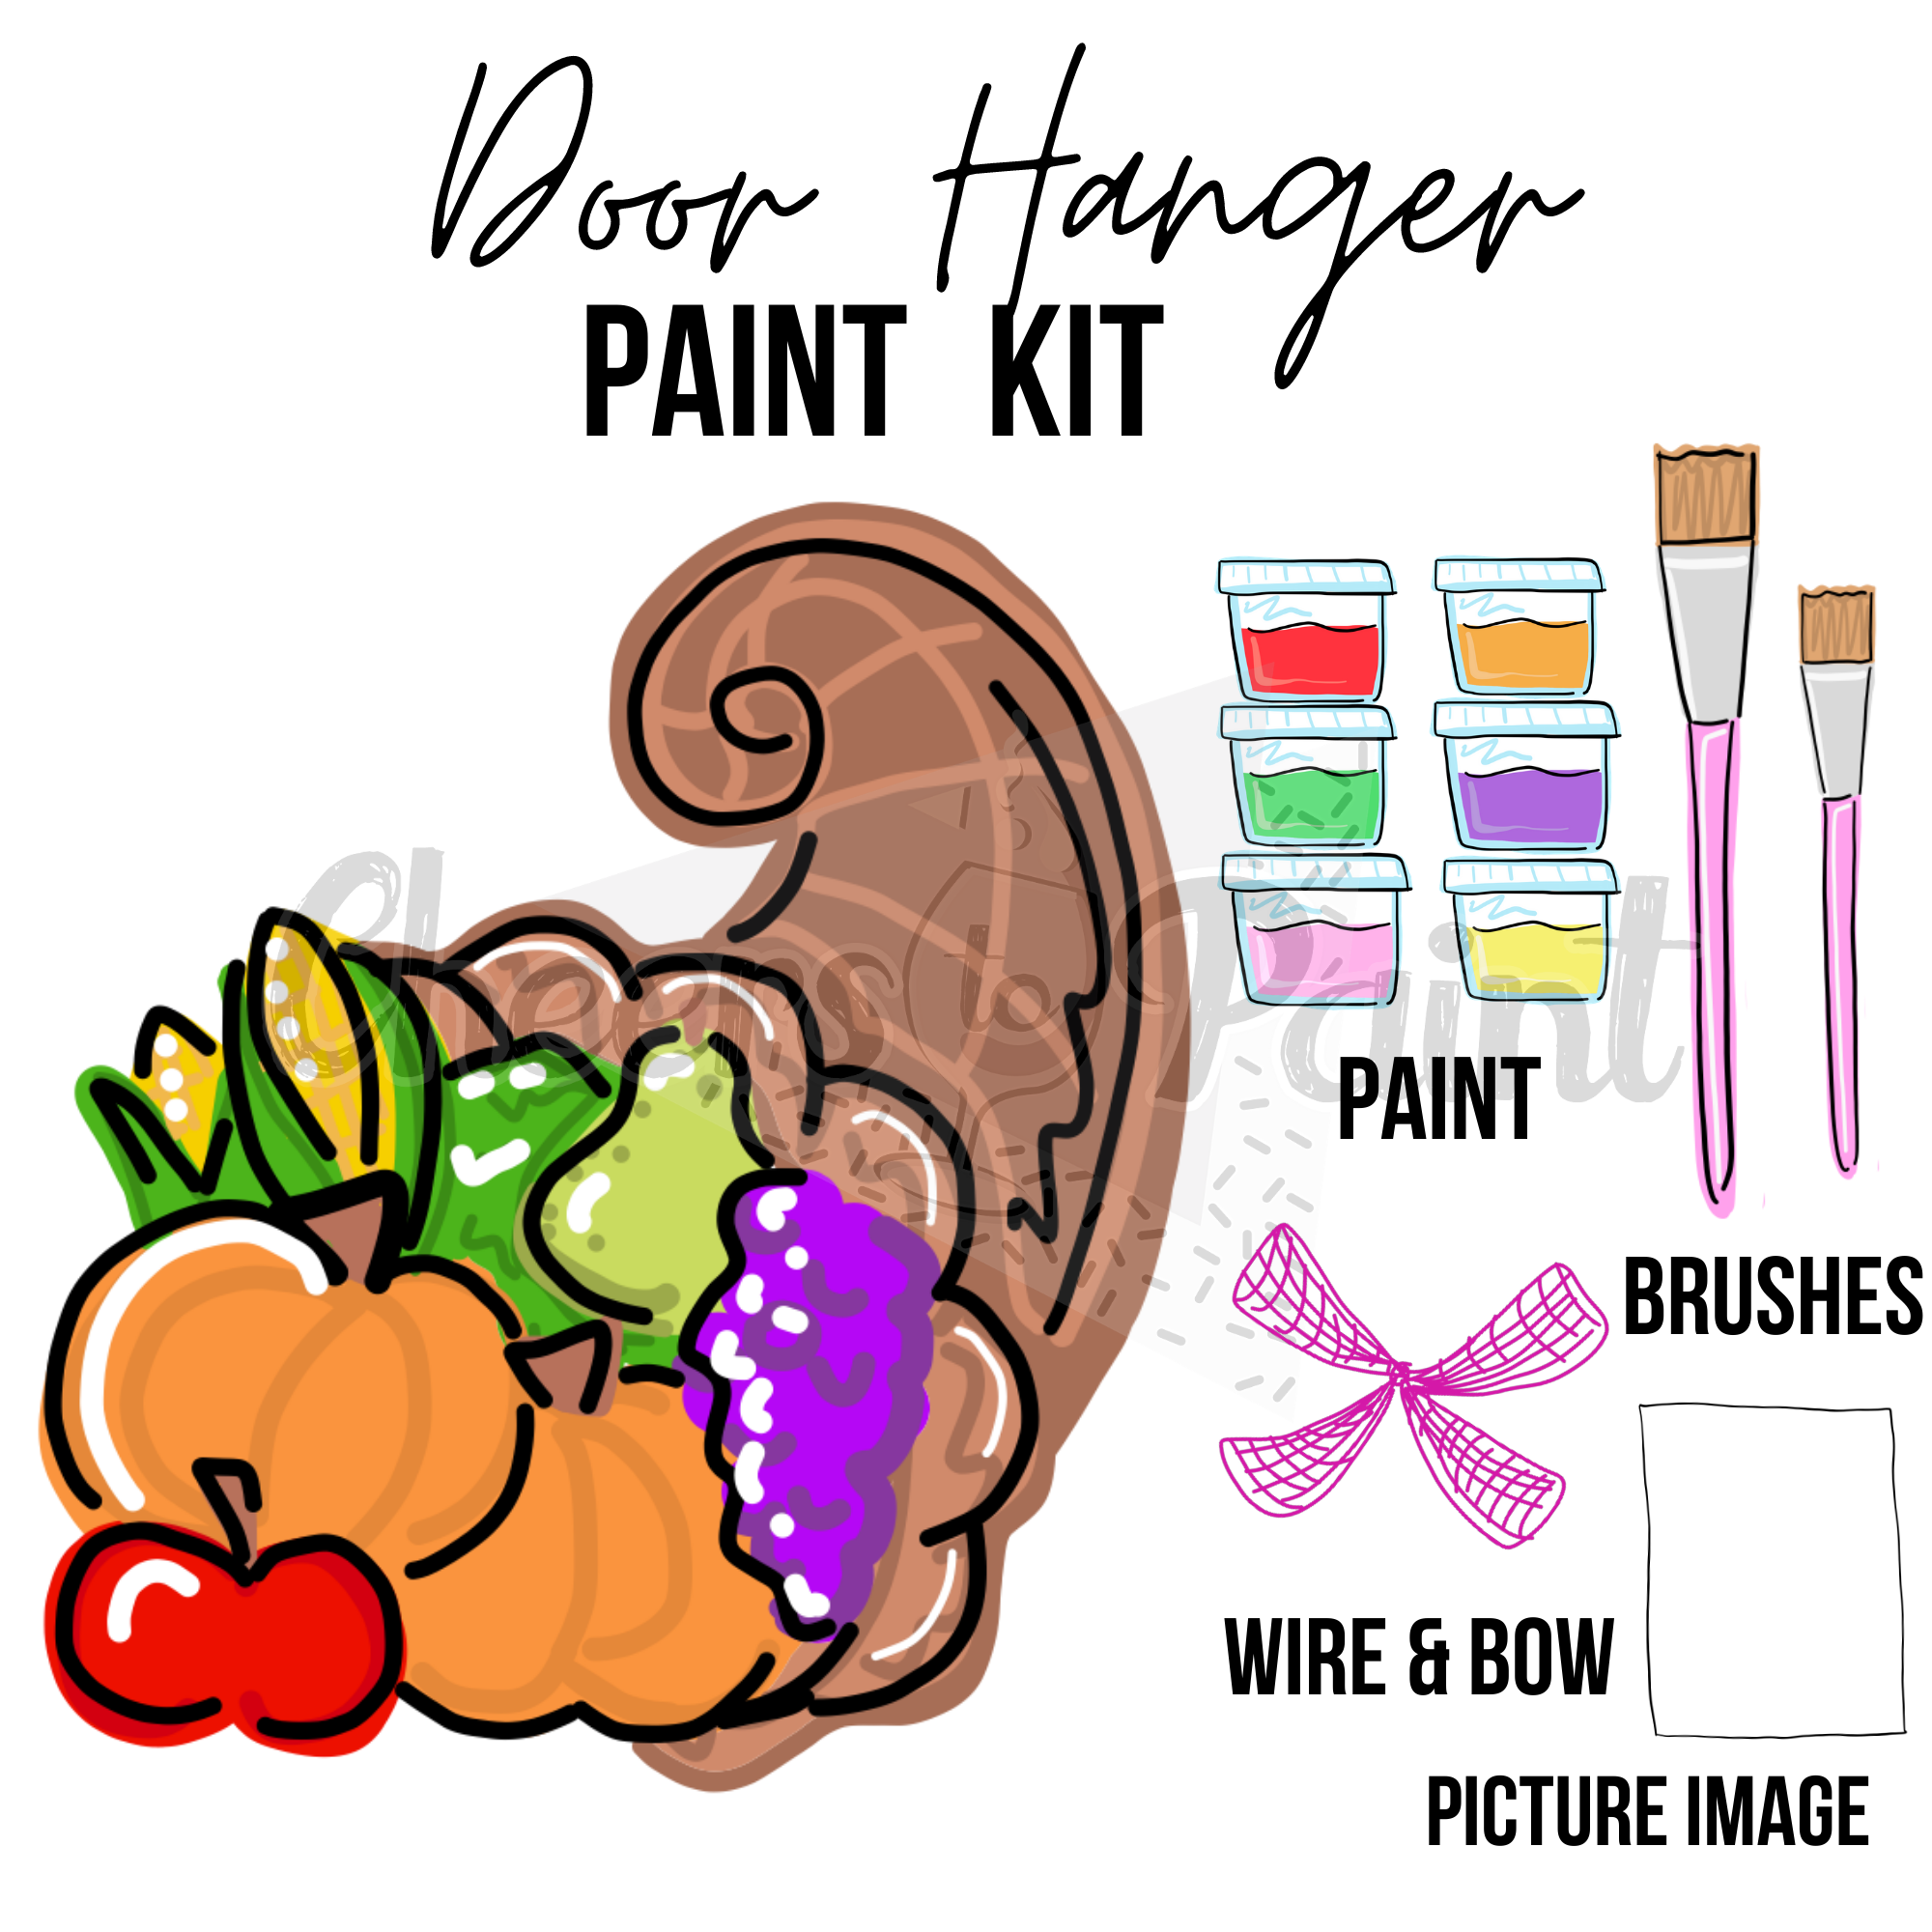 Cornucopia - DIY Door Hanger Paint Kit